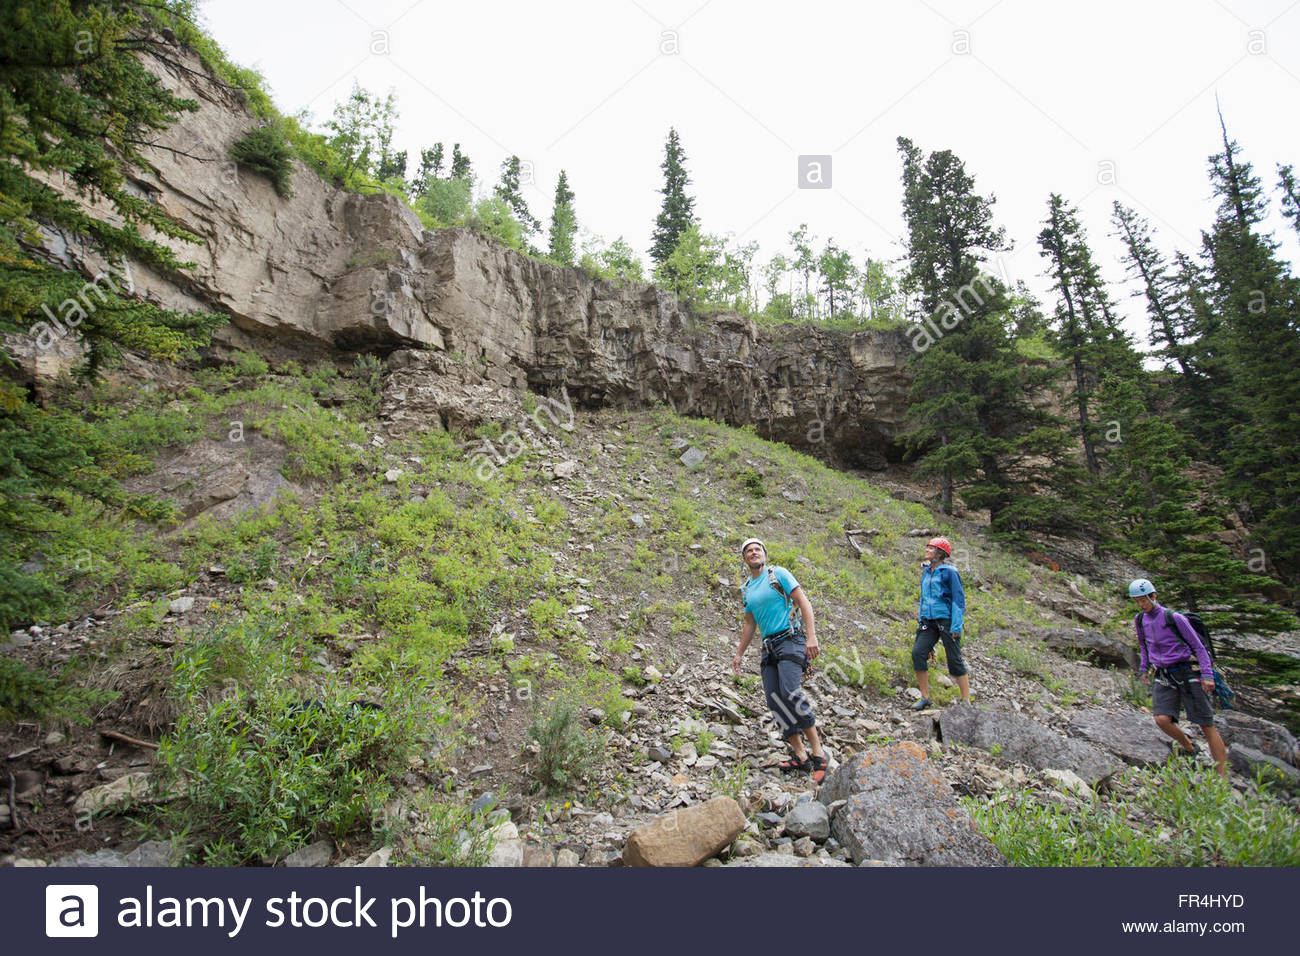 three rock climbers scouting out area to climb - Stock Image